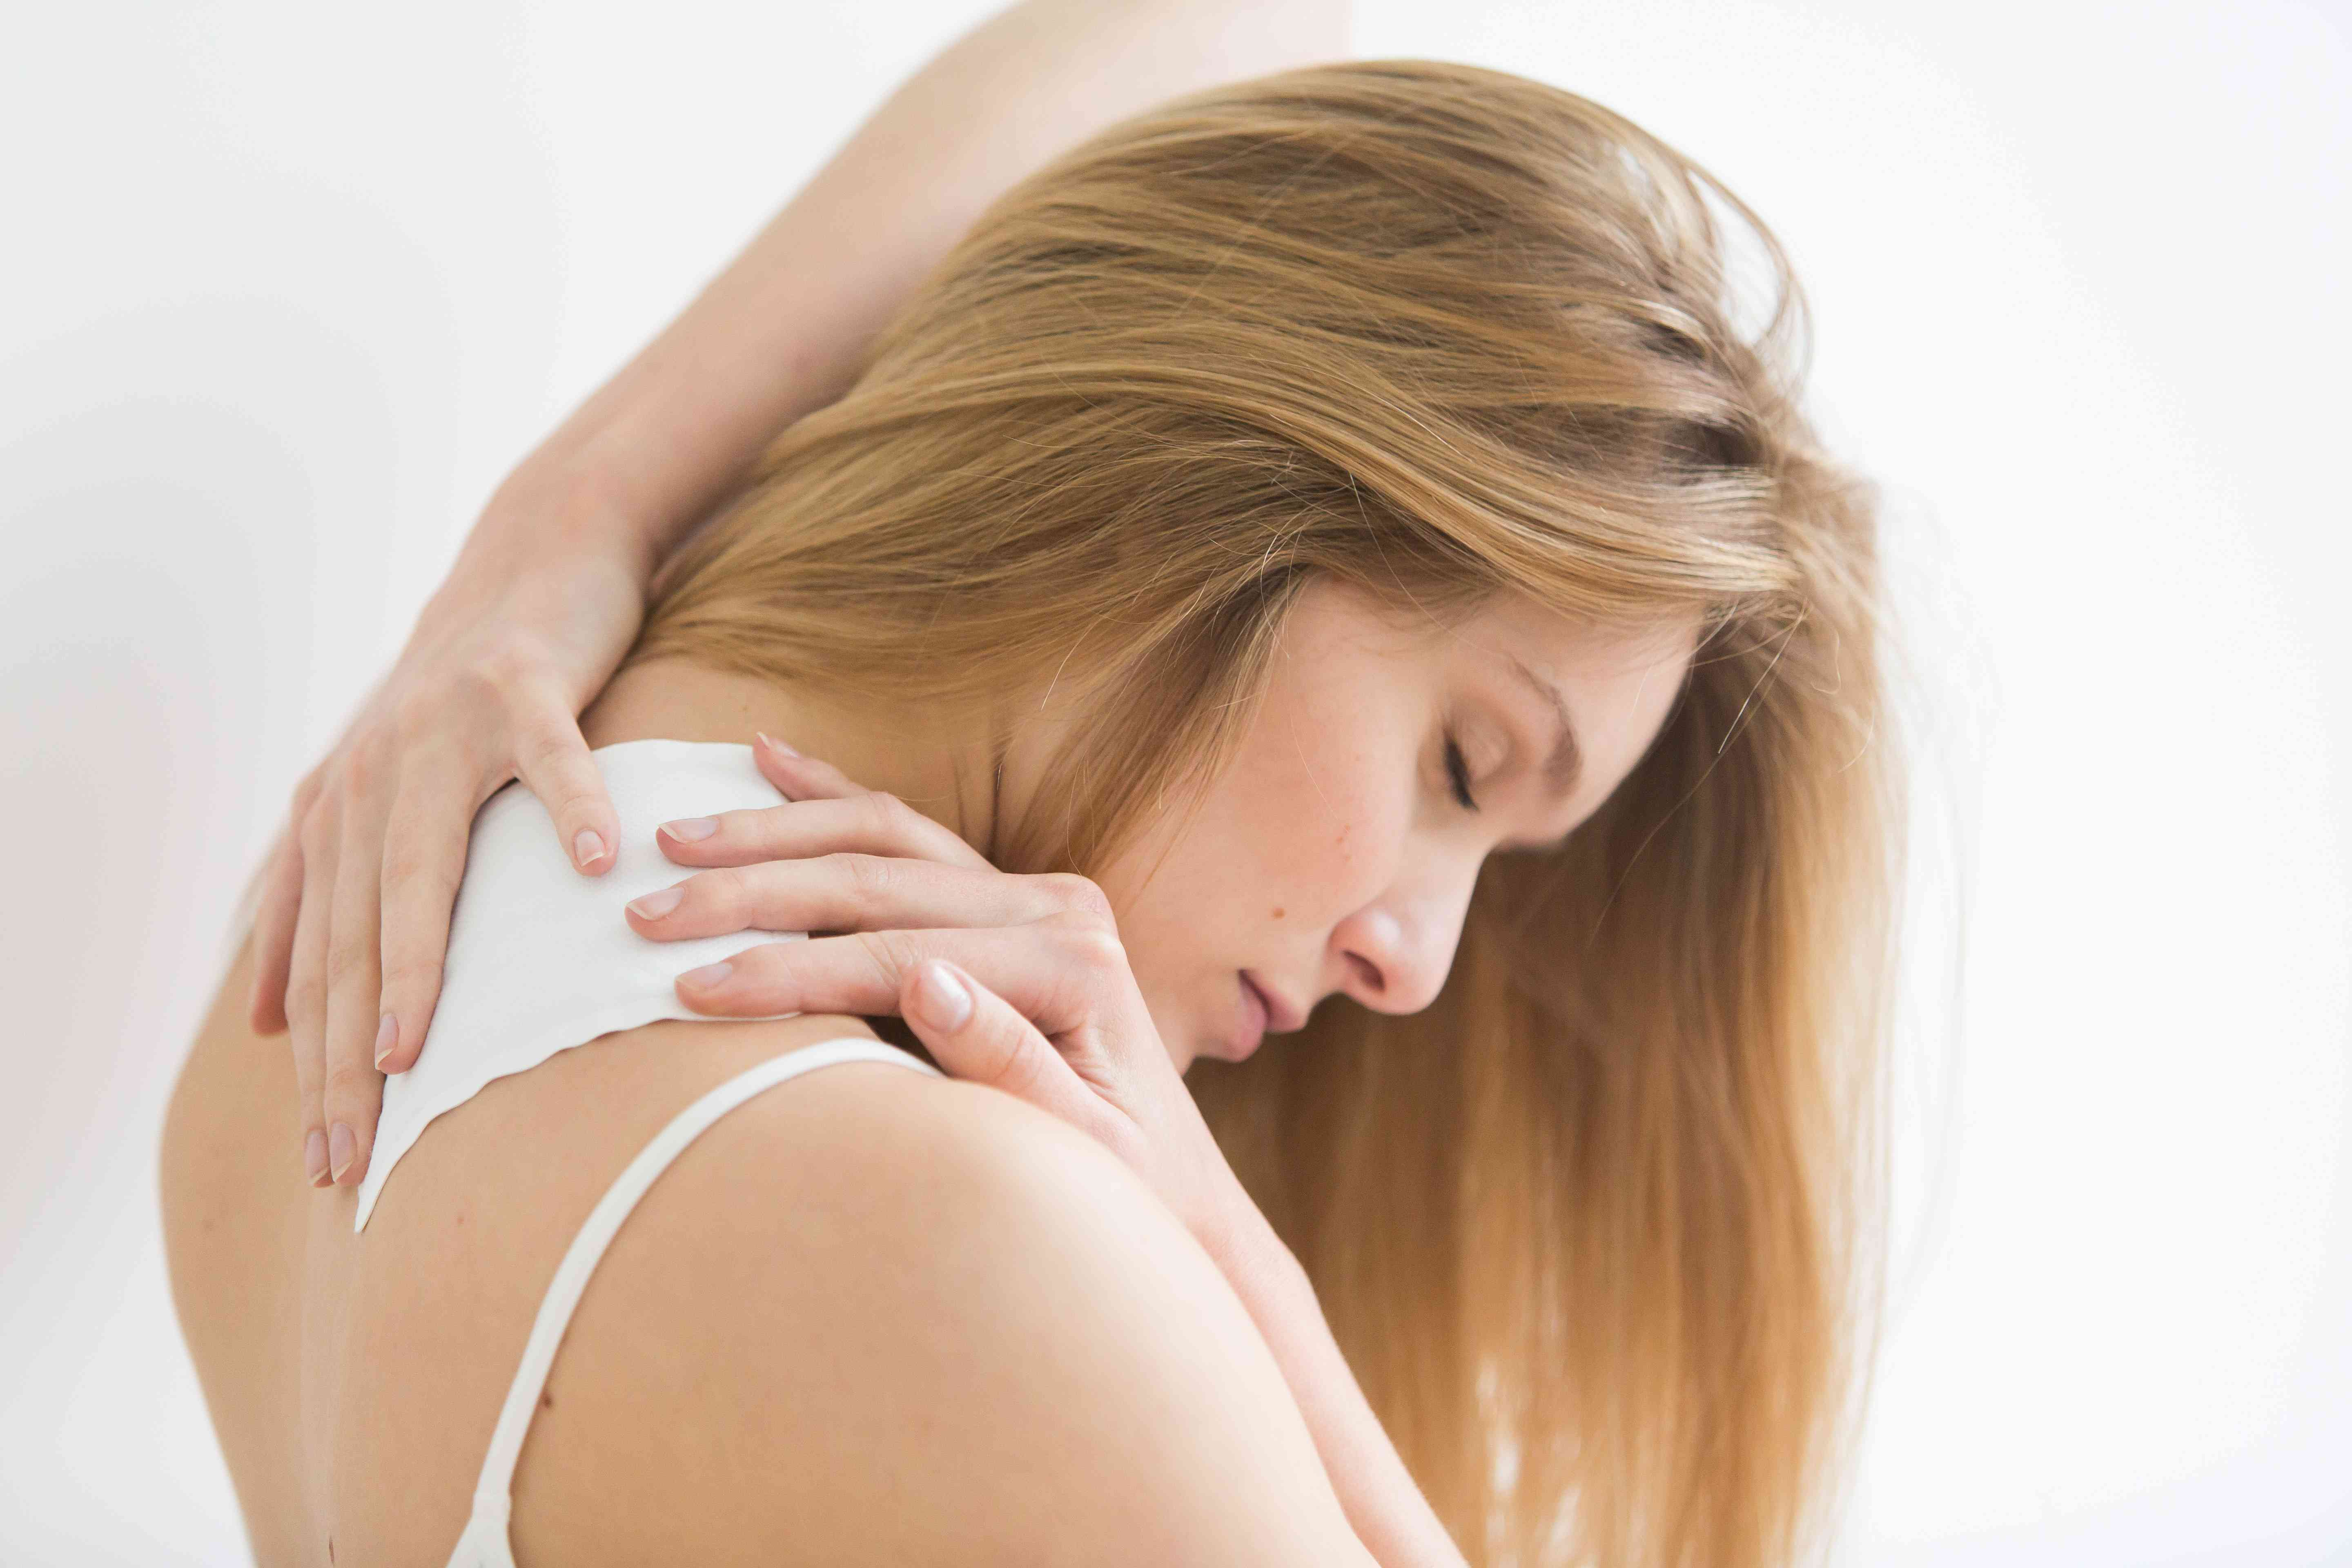 Woman applying pain patch